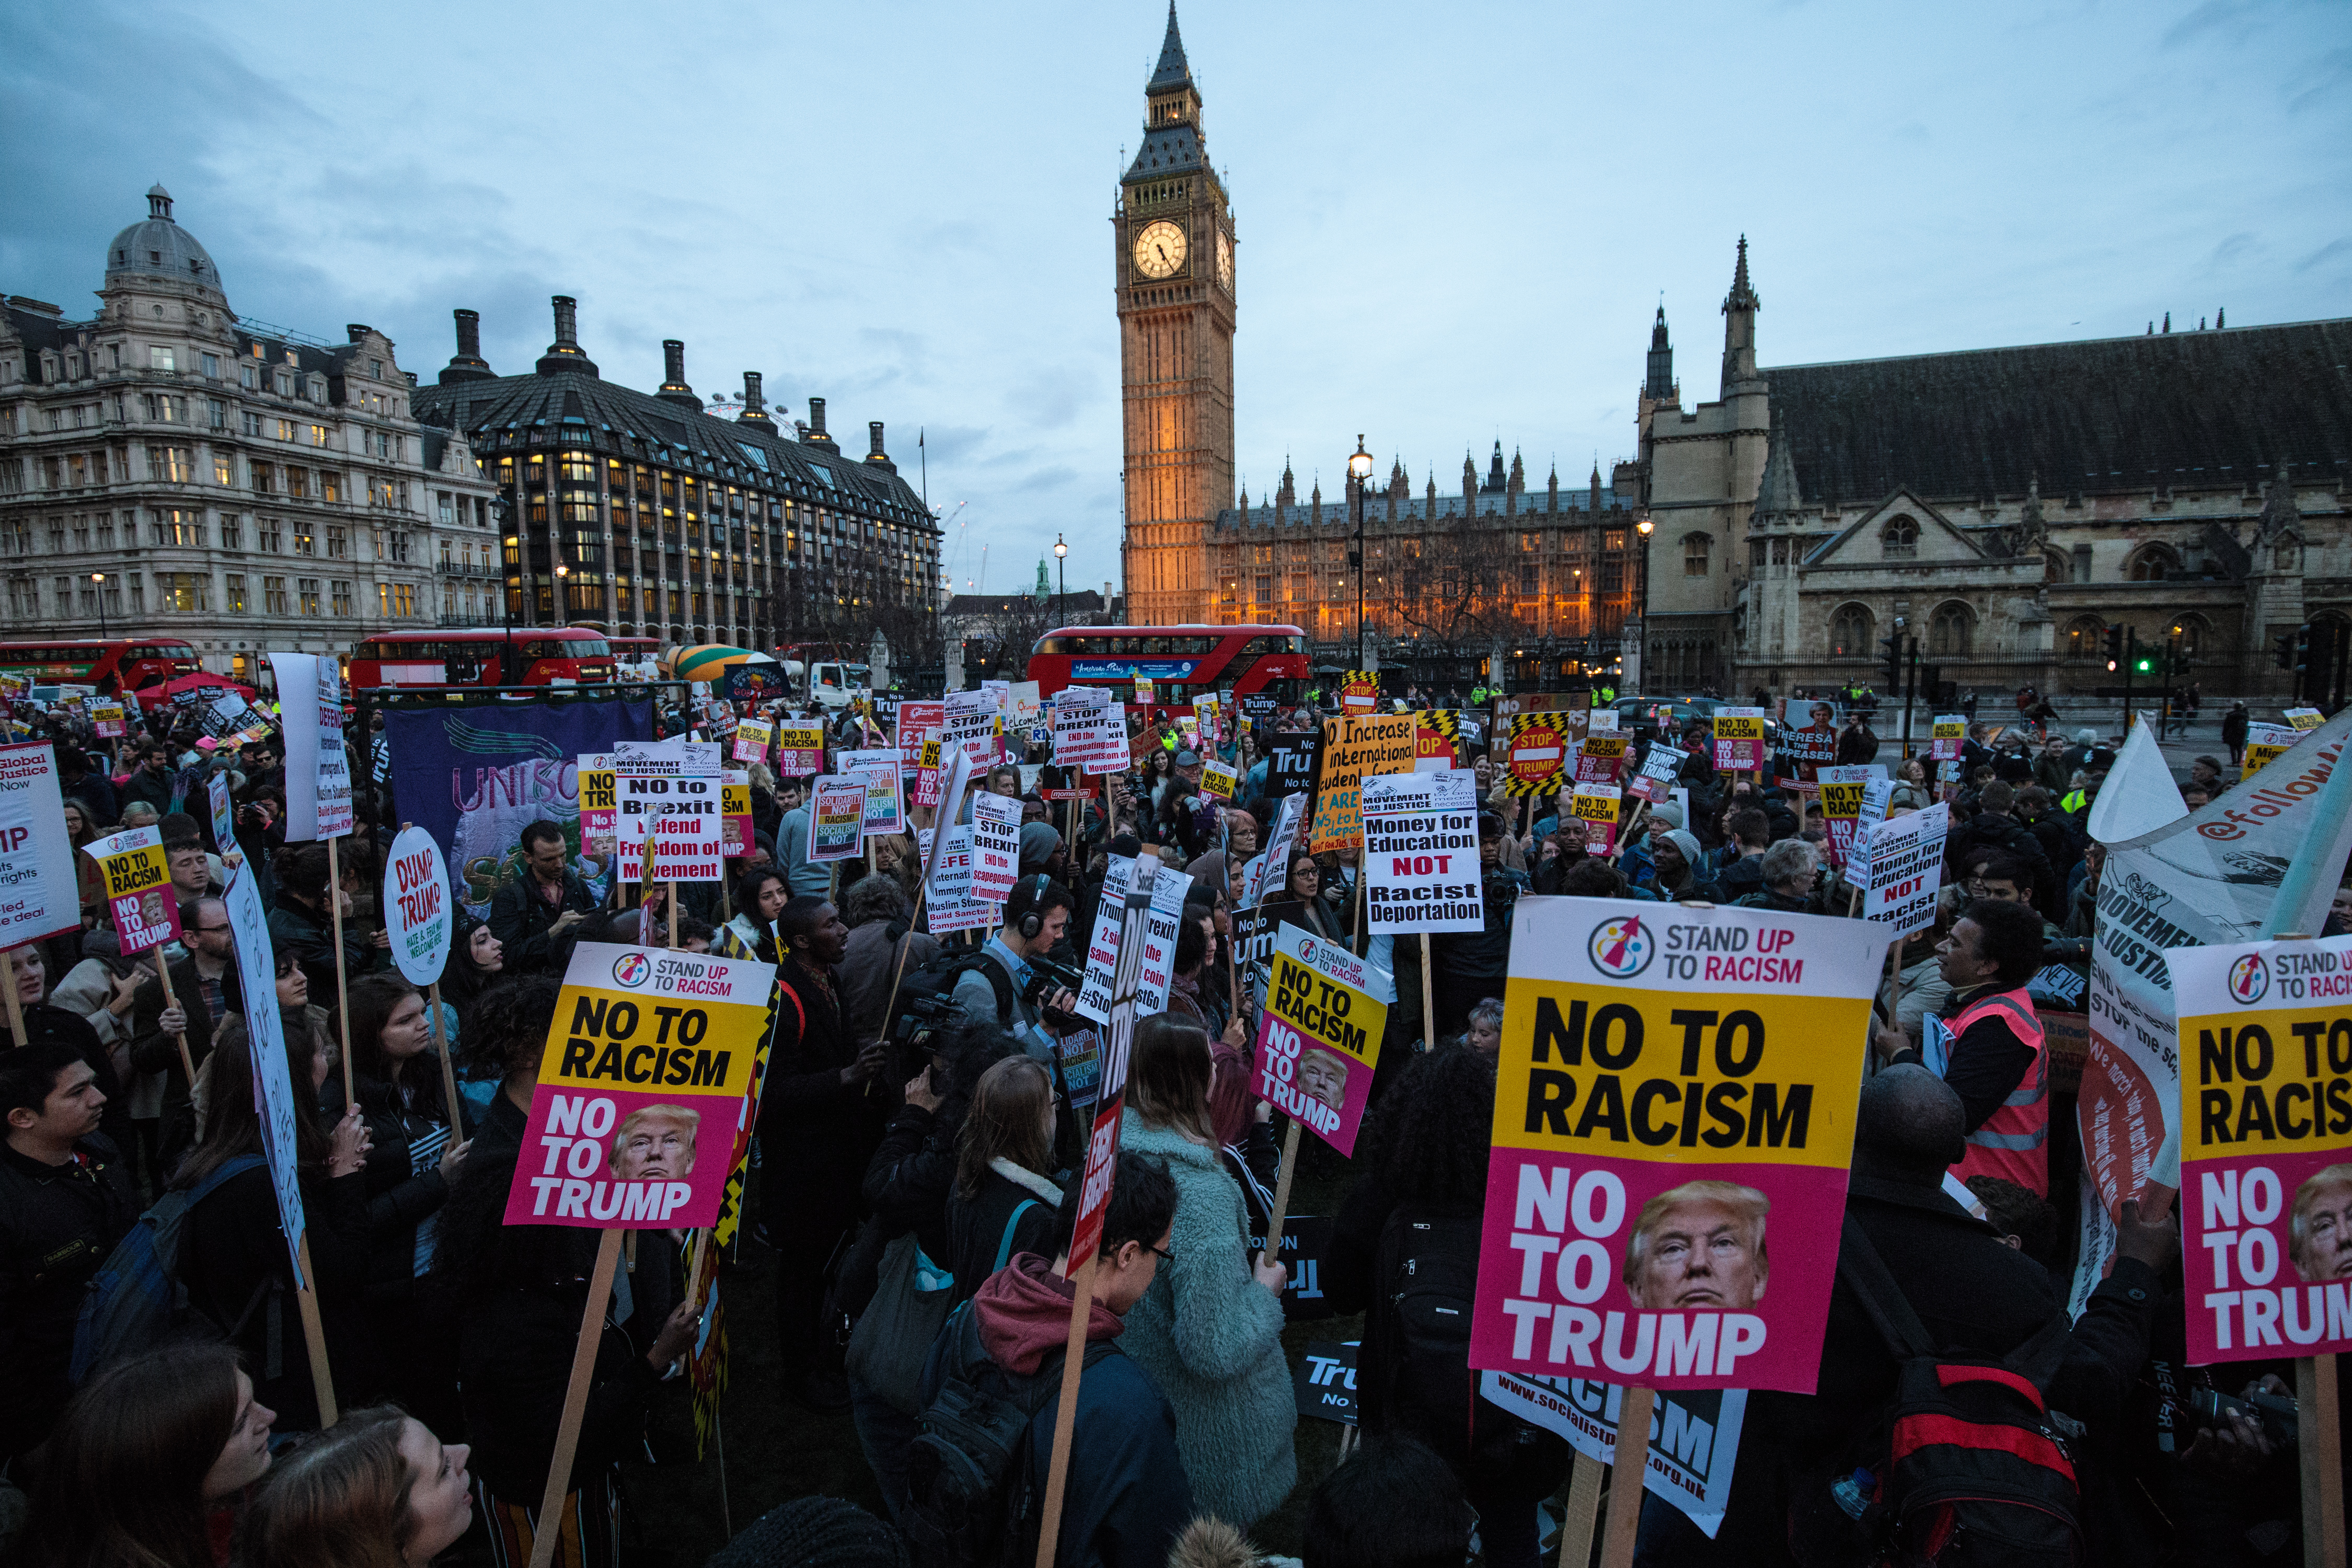 Protesters holding placards take part in a rally in Parliament Square against U.S. president Donald Trump's state visit to the UK on February 20, 2017 in London, England.